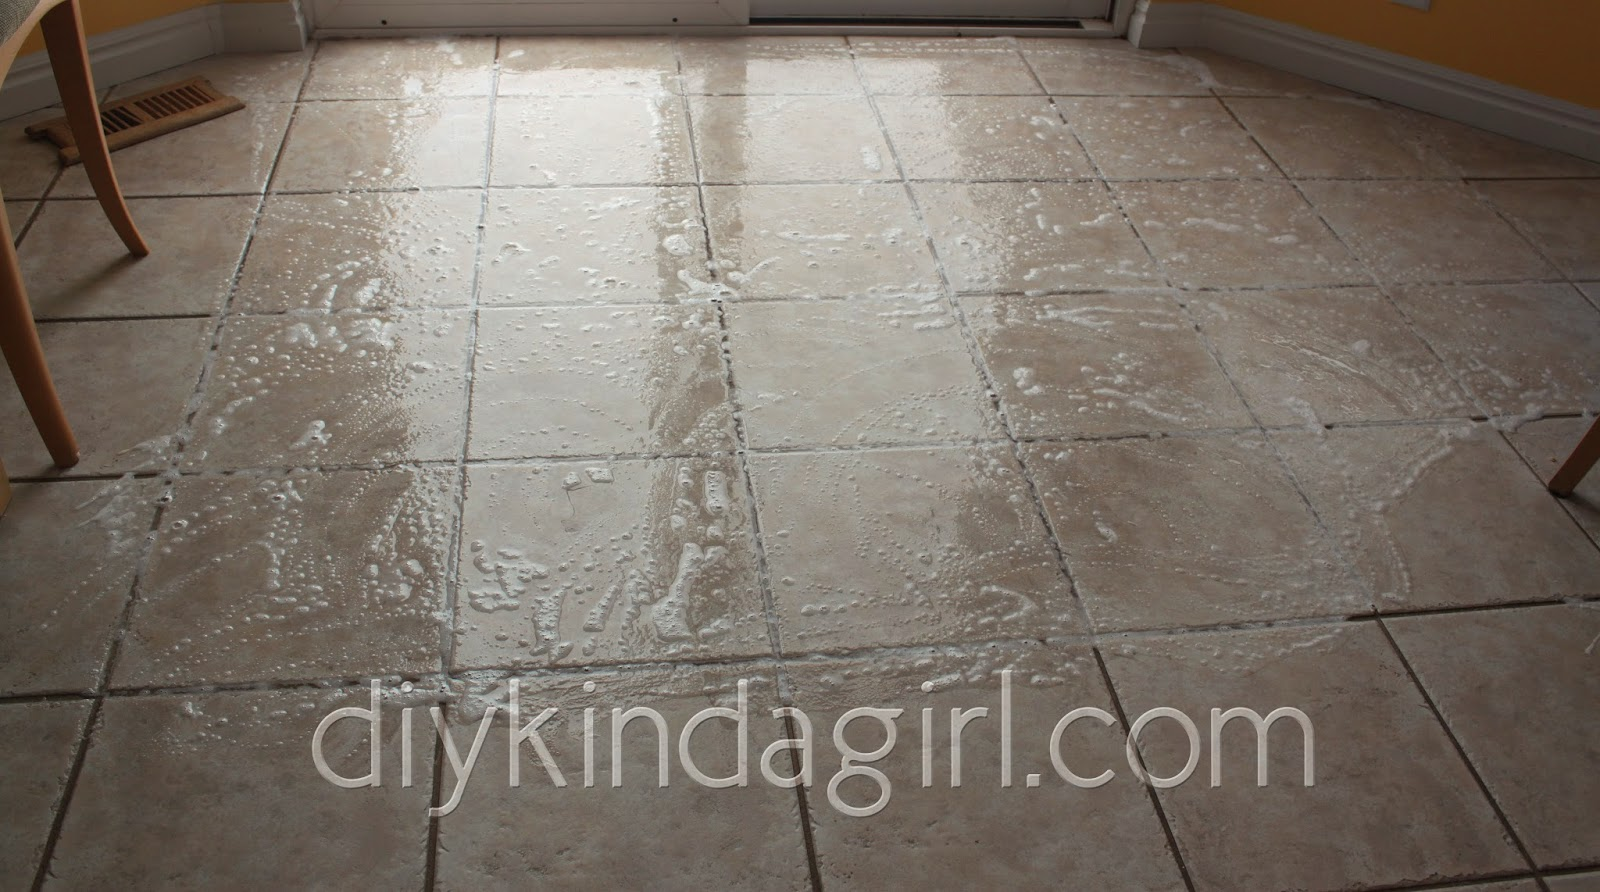 DIY Kinda Girl DIY Household Tip Cleaning Grout OxiClean Vs Woolite - Cleaning grout off porcelain tile